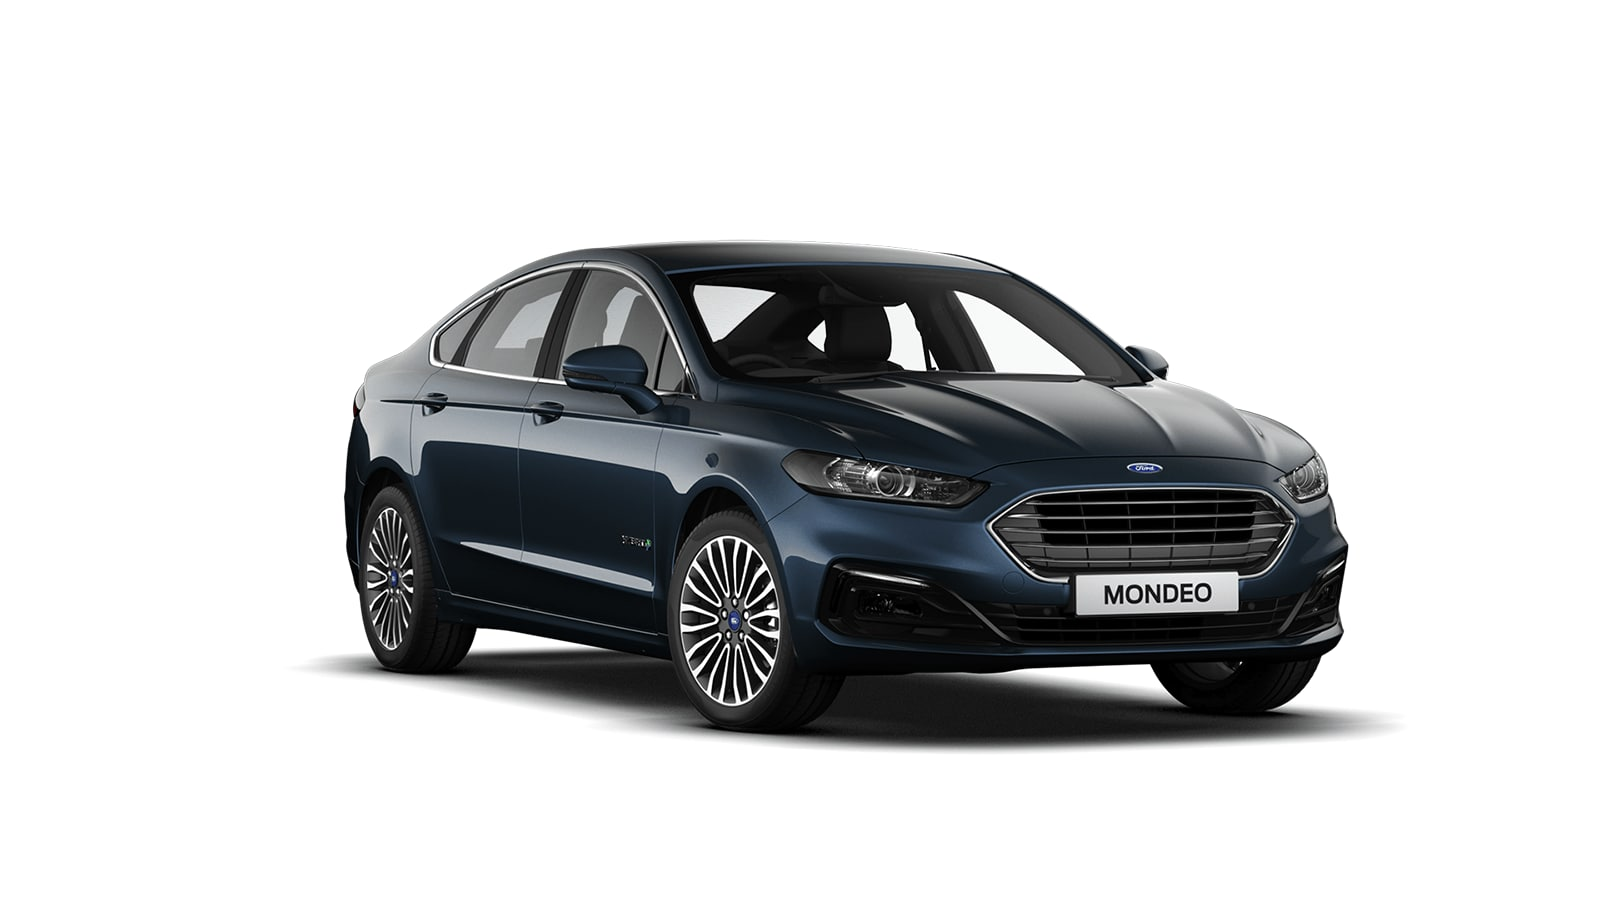 https://www.dealerinternet.co.uk/images/MONDEO%20(CD345)/2019.5/4%20Door/TitaniumEditionHybrid/CHROME-BLUE.png